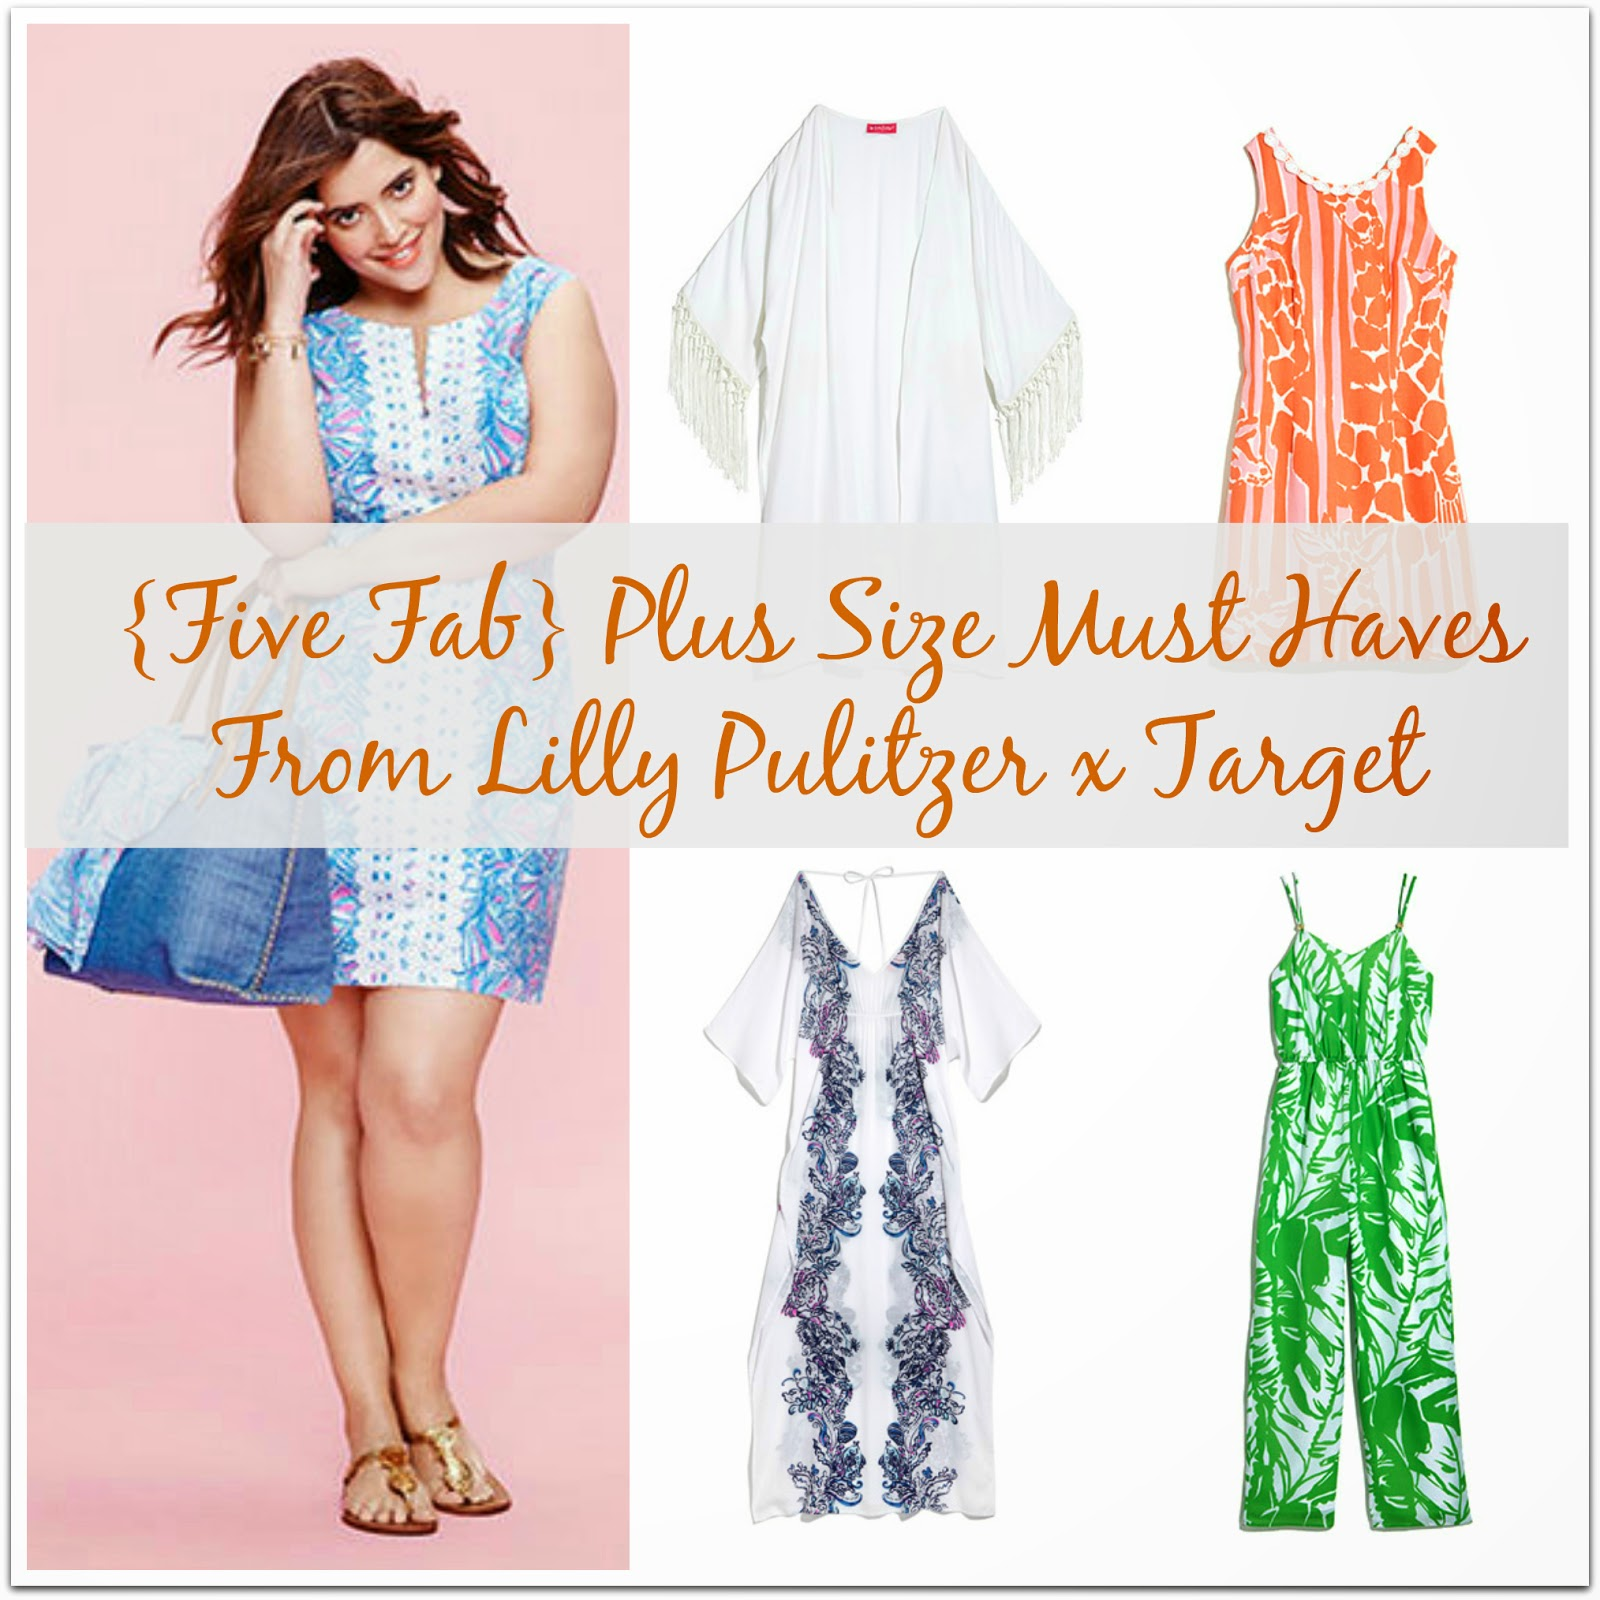 d64e8cda456c9  Five Fab  Plus Size Must Haves From Lilly Pulitzer x Target   LillyforTarget • Curvatude